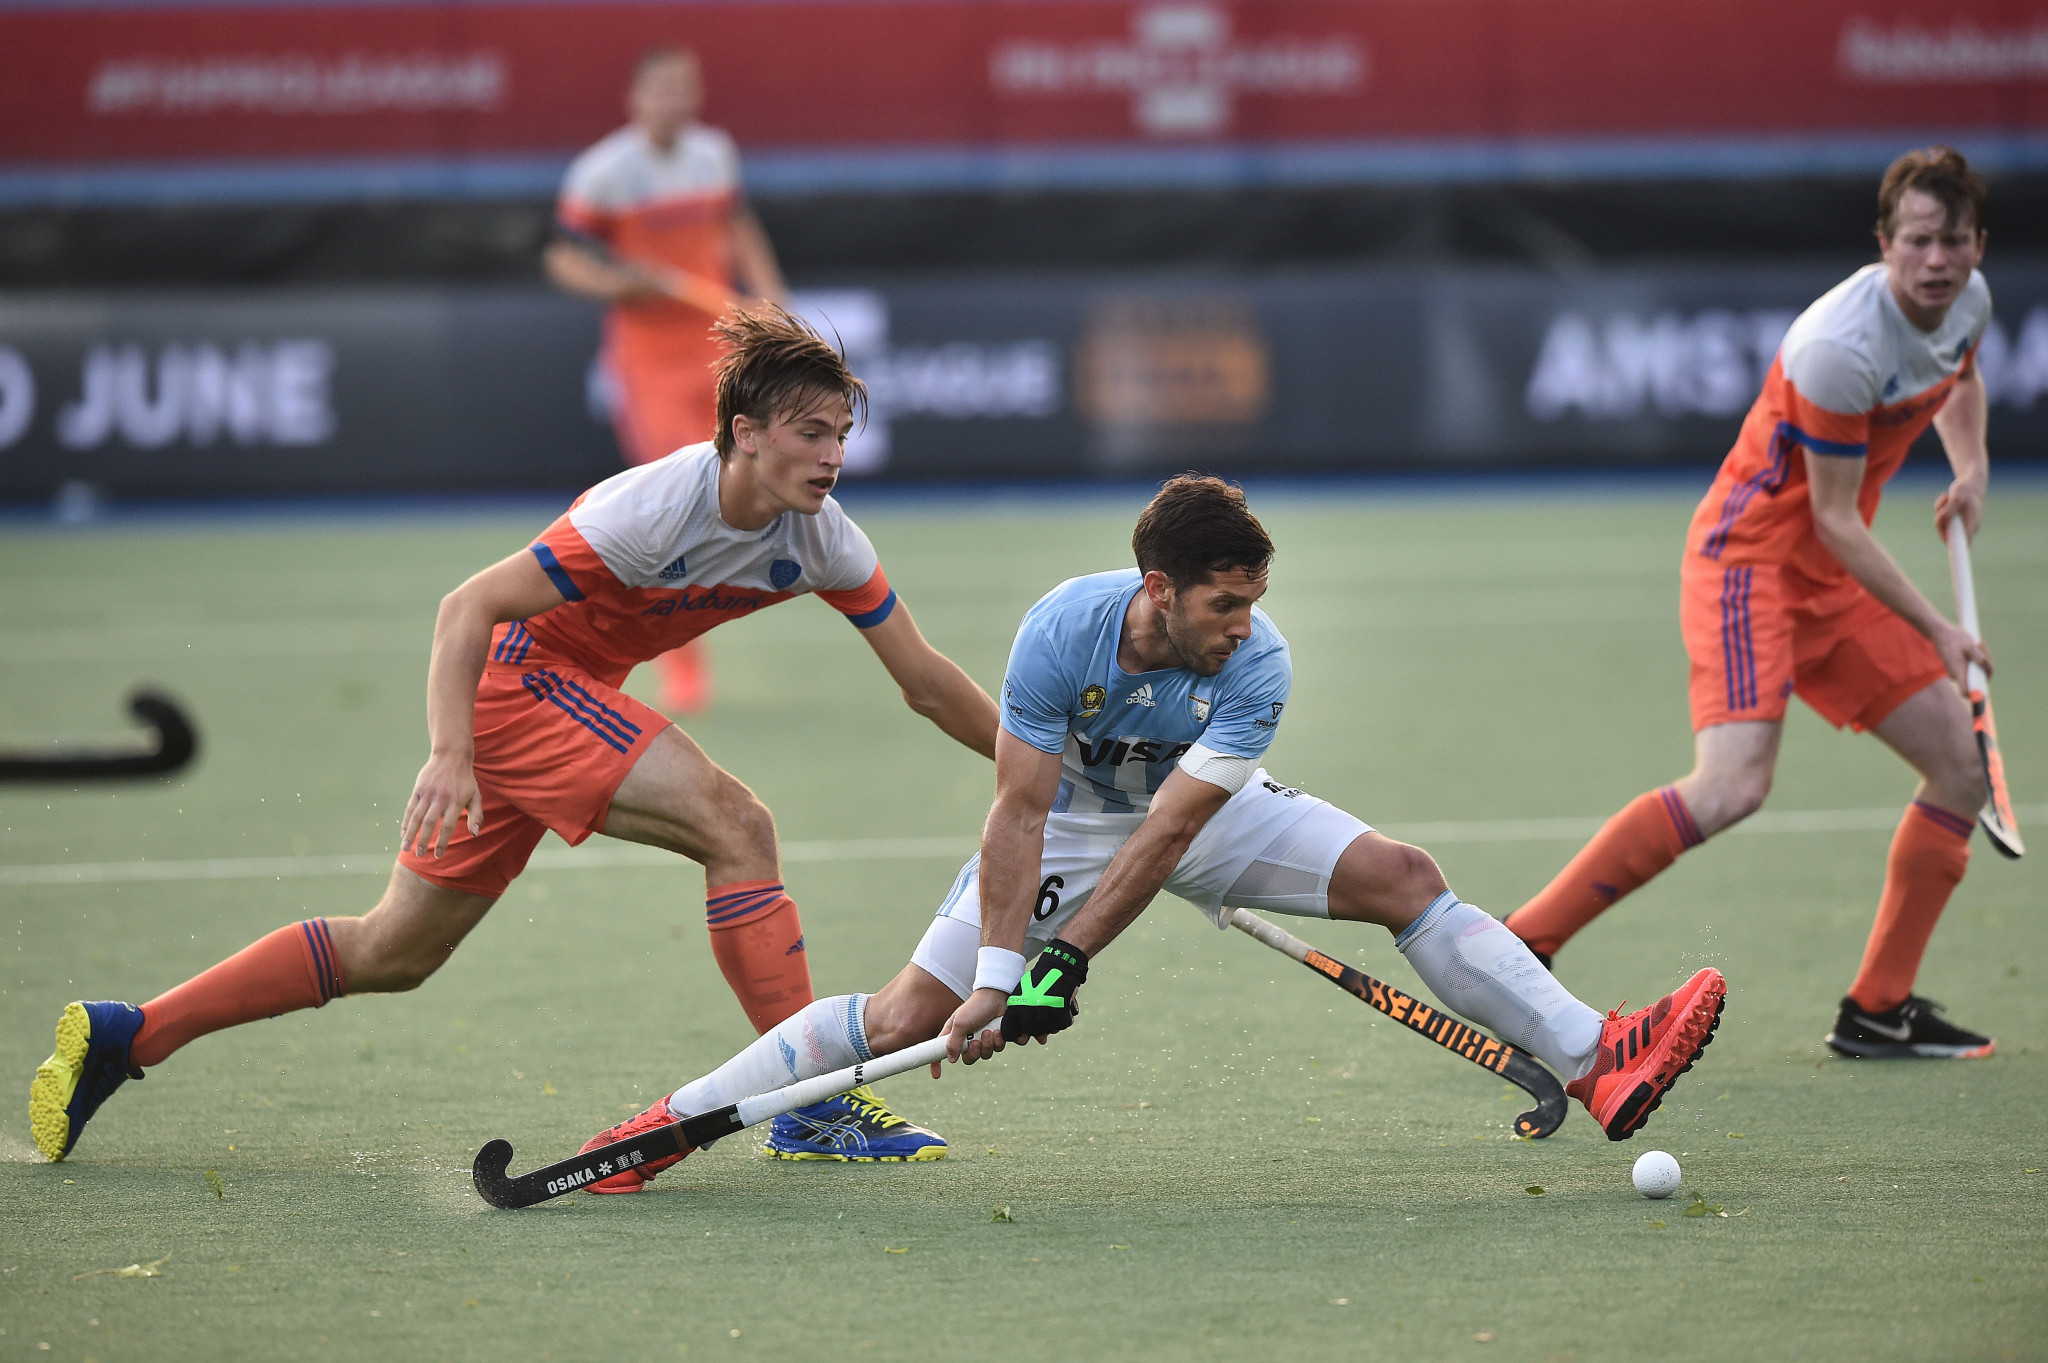 Netherlands qualify for men's FIH Pro League Grand Final despite shoot-out defeat to Argentina